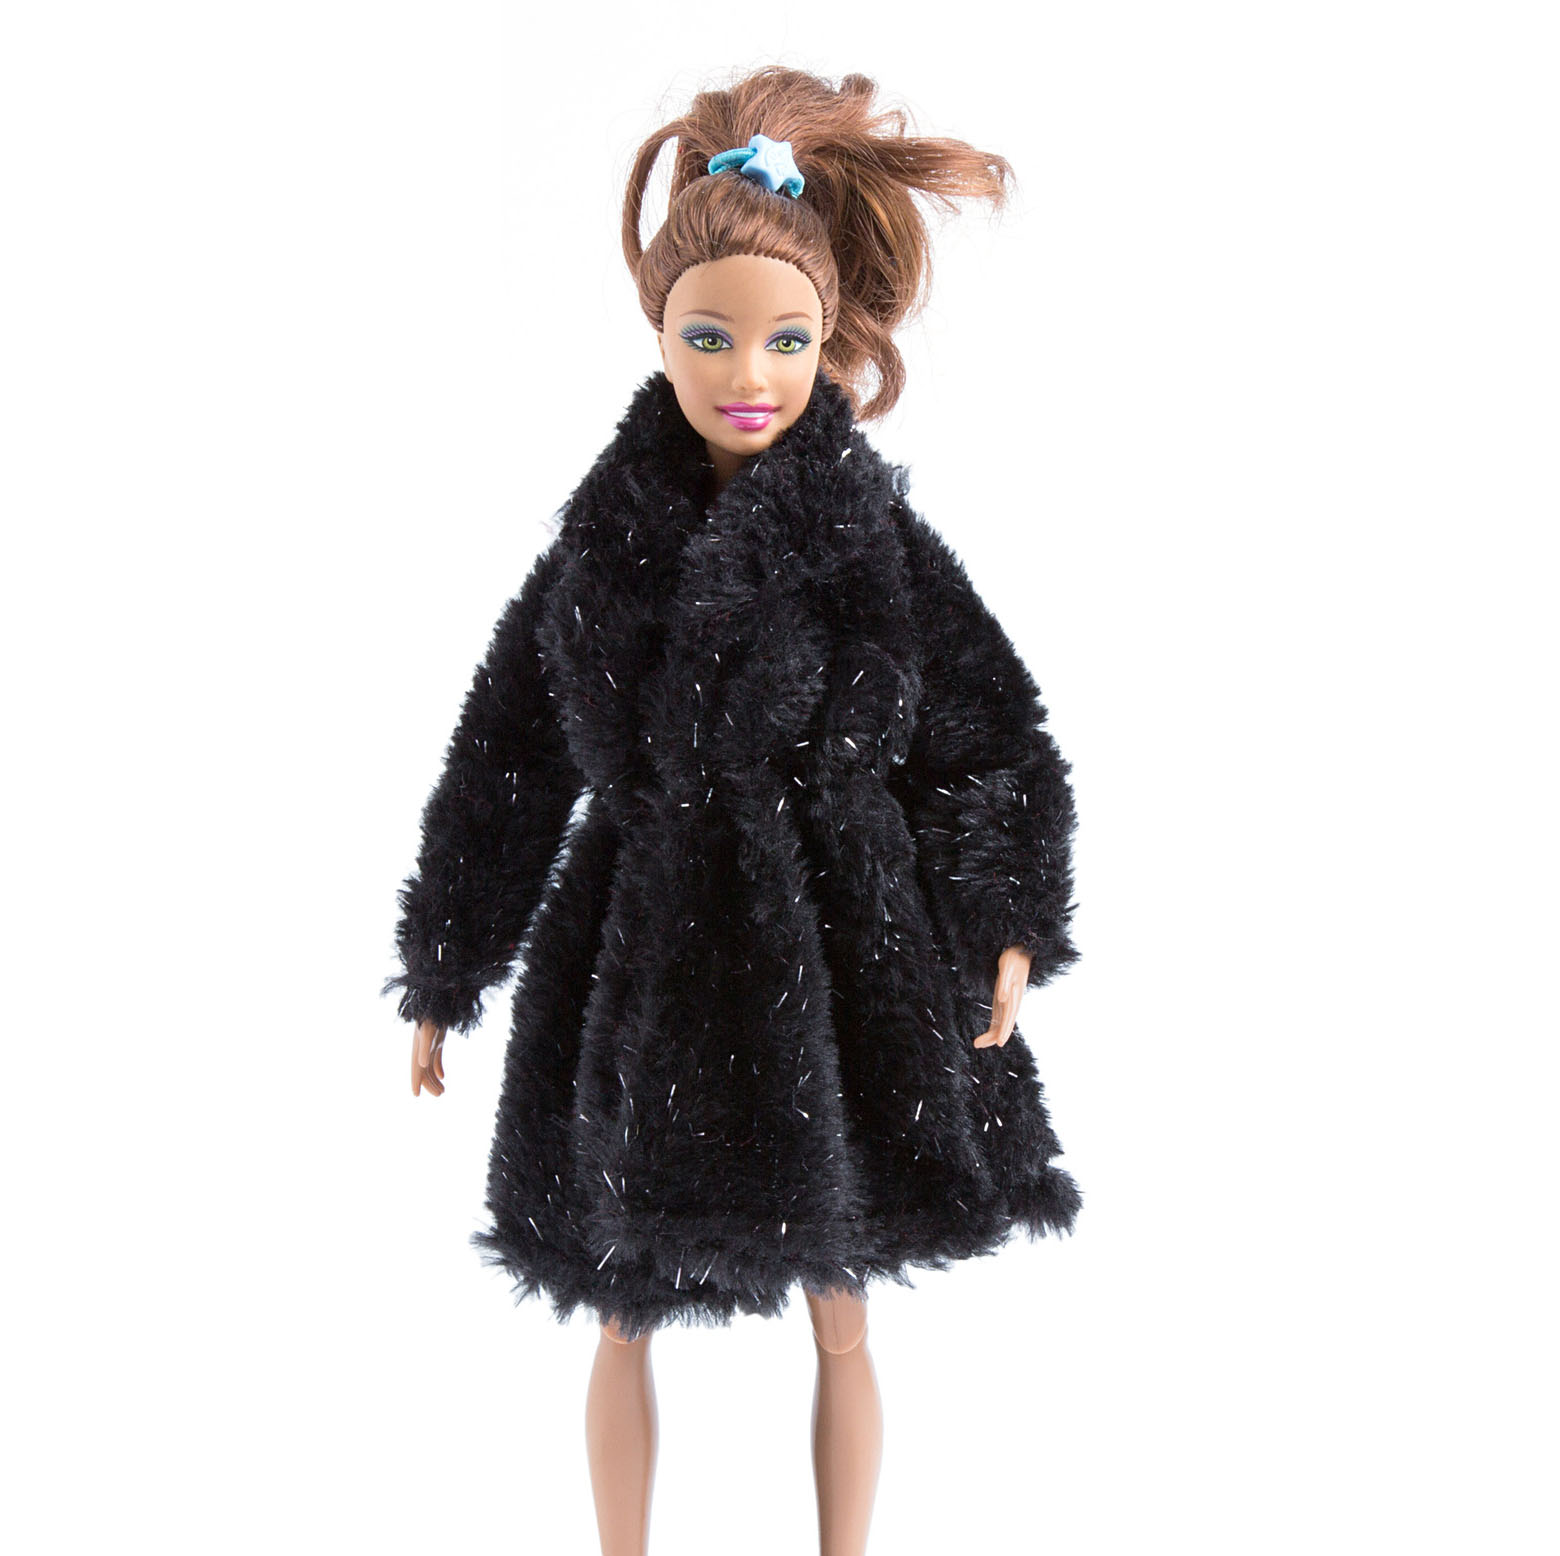 Fashion Outfit clothes Gray Fur Winter Coat FOR 11.5 inch Doll